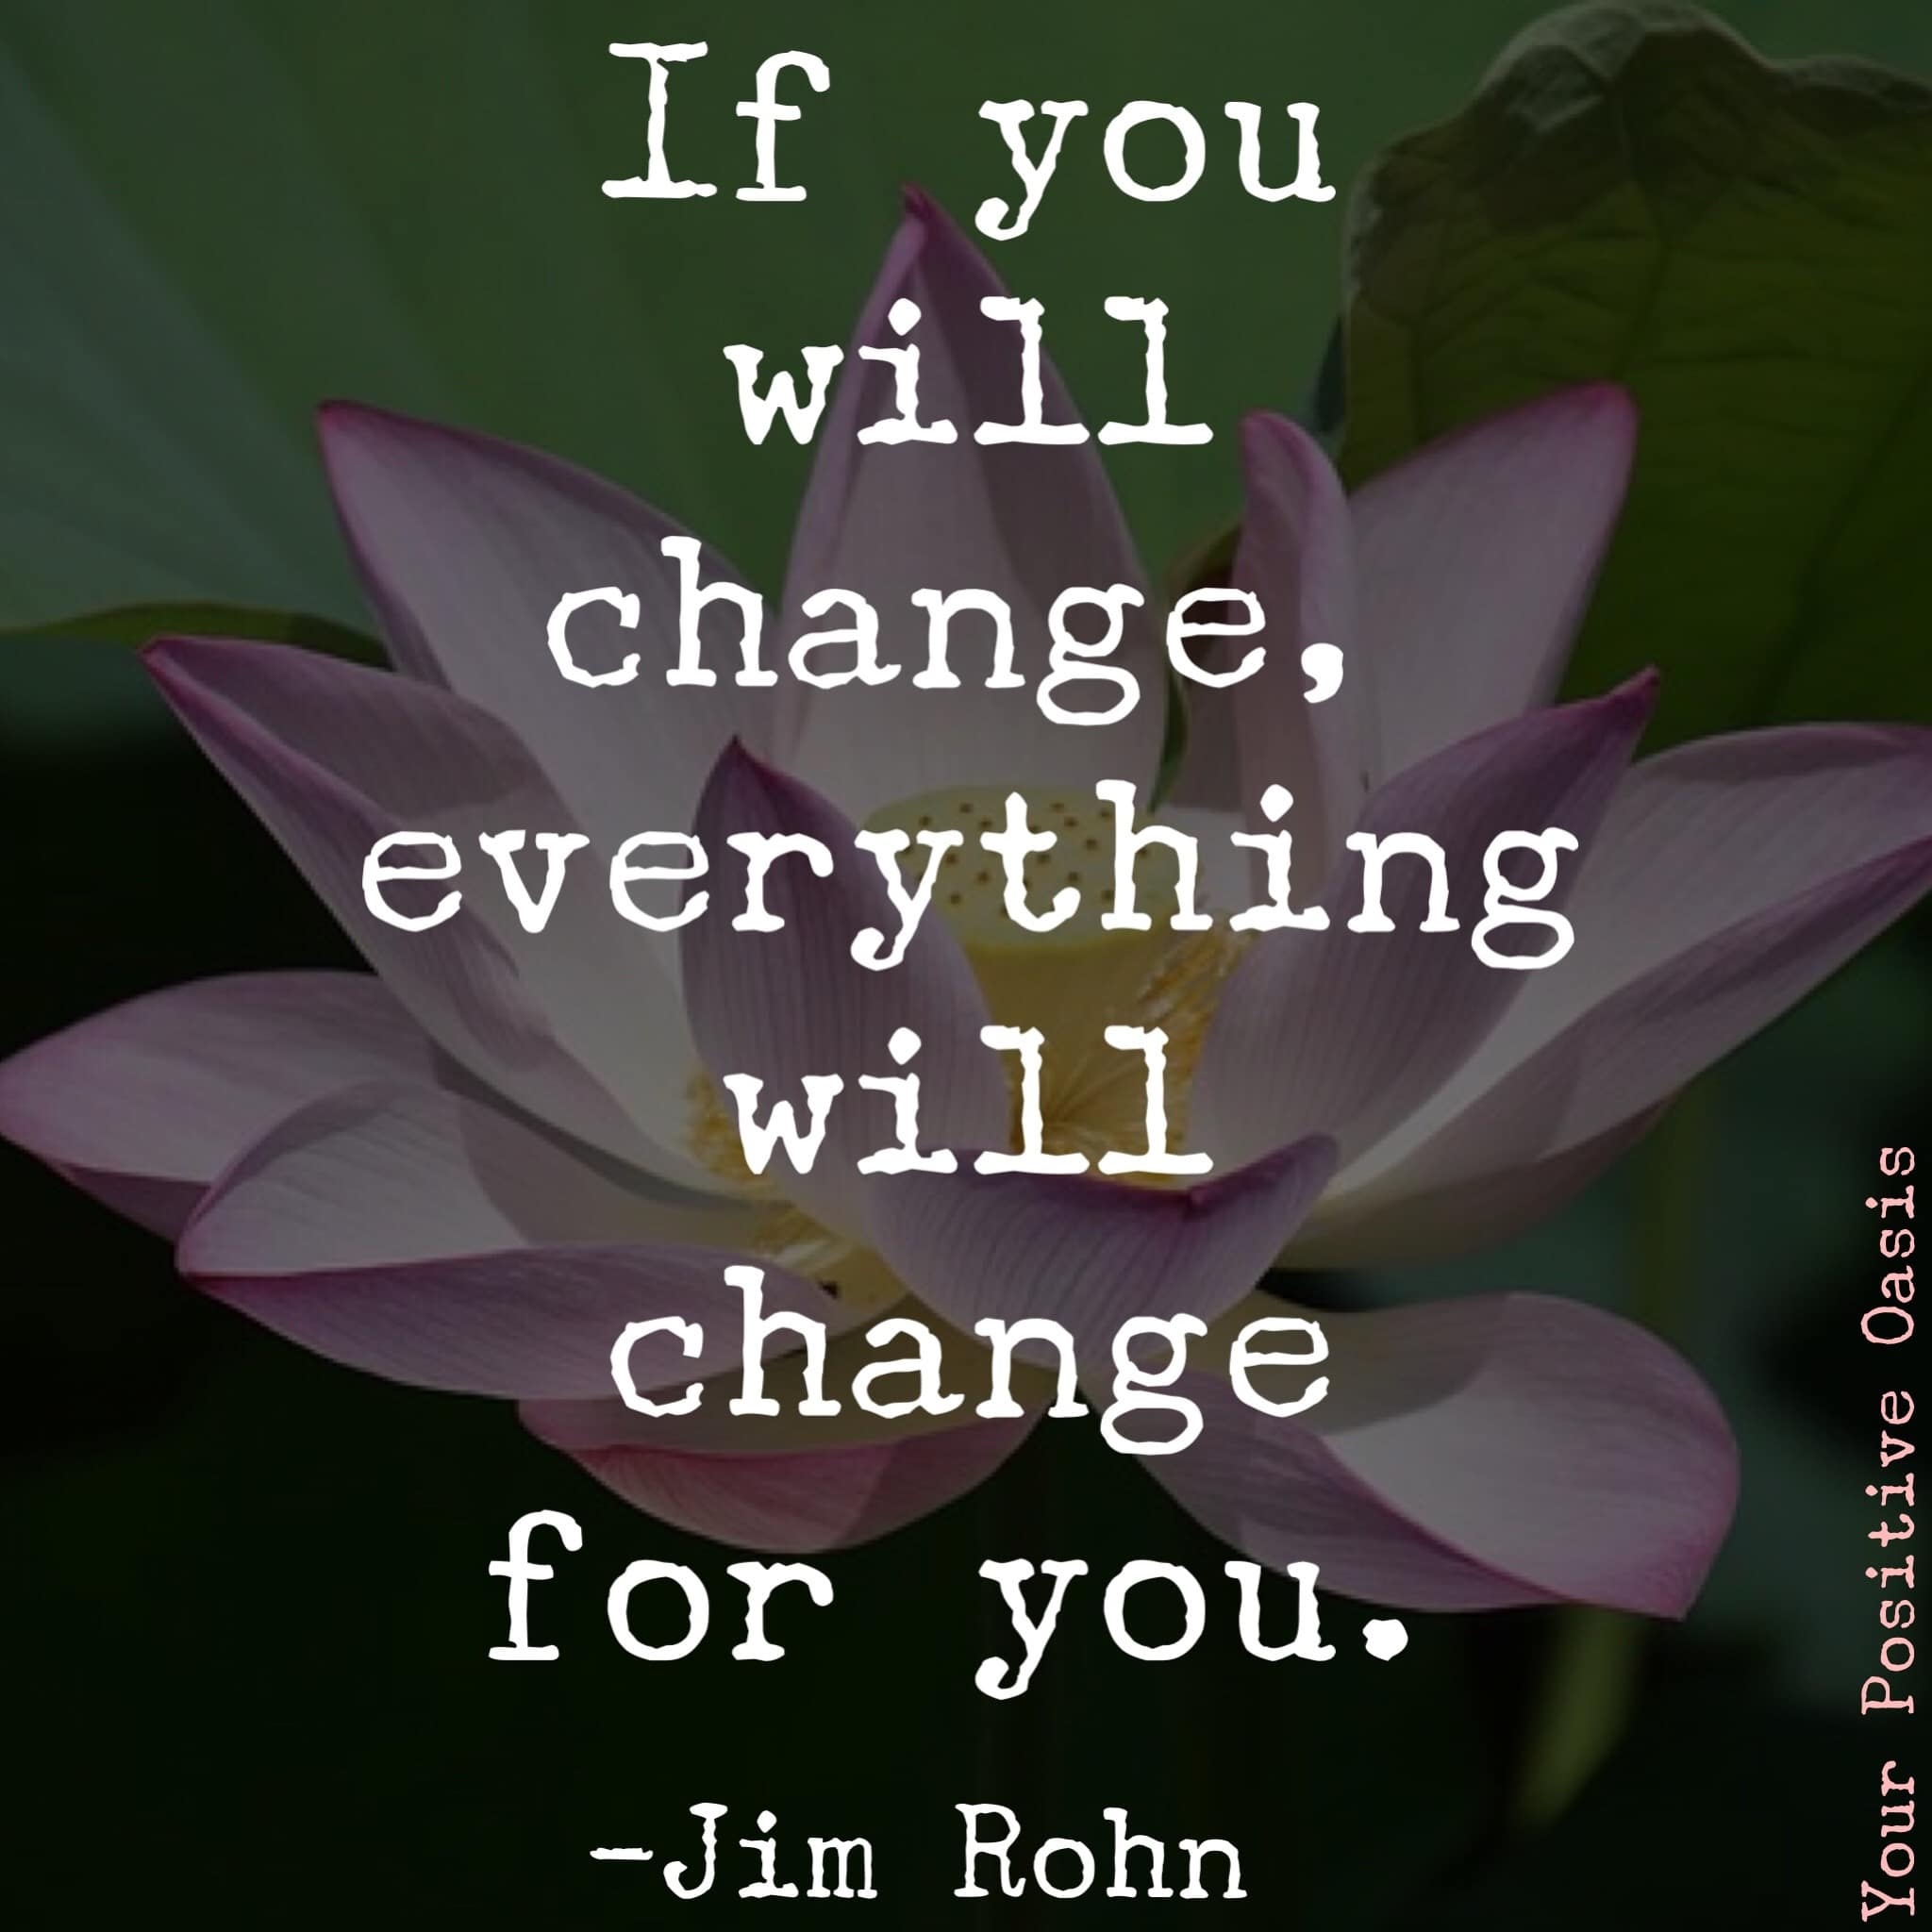 Personal Development Quotes 30 Motivational Jim Rohn Quotes